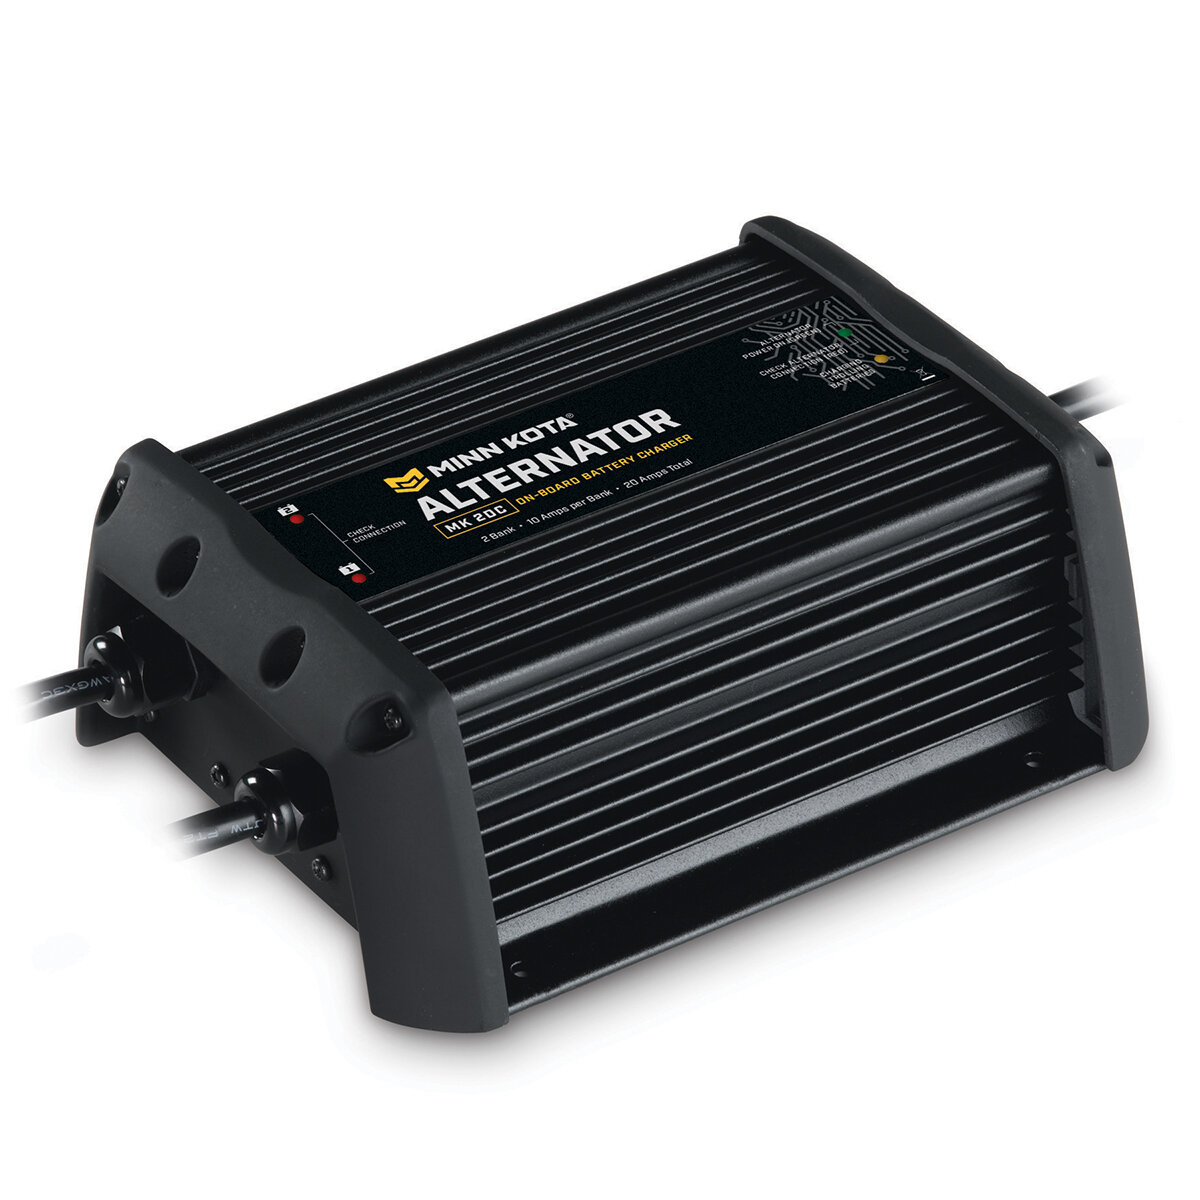 Minn Kota Dual Bank Alternator Charger